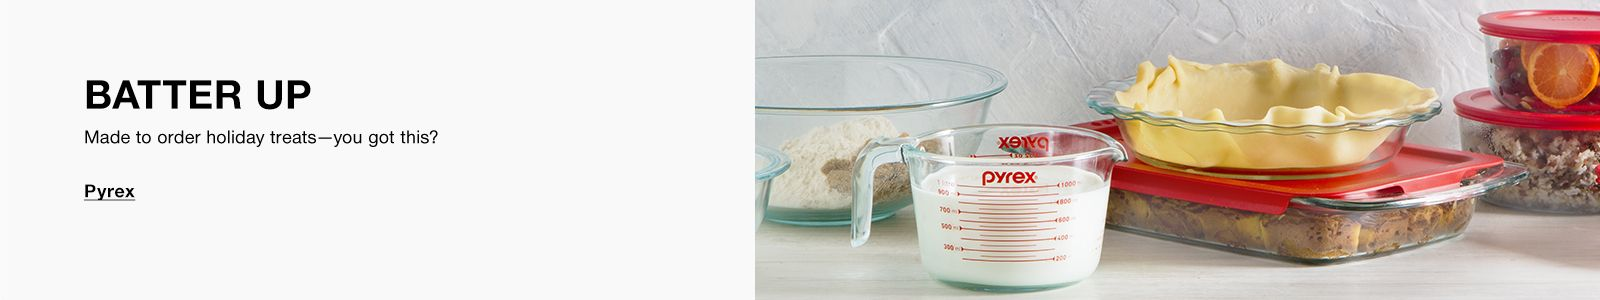 Batter up, Made to order holiday treats-you got this? Pyrex